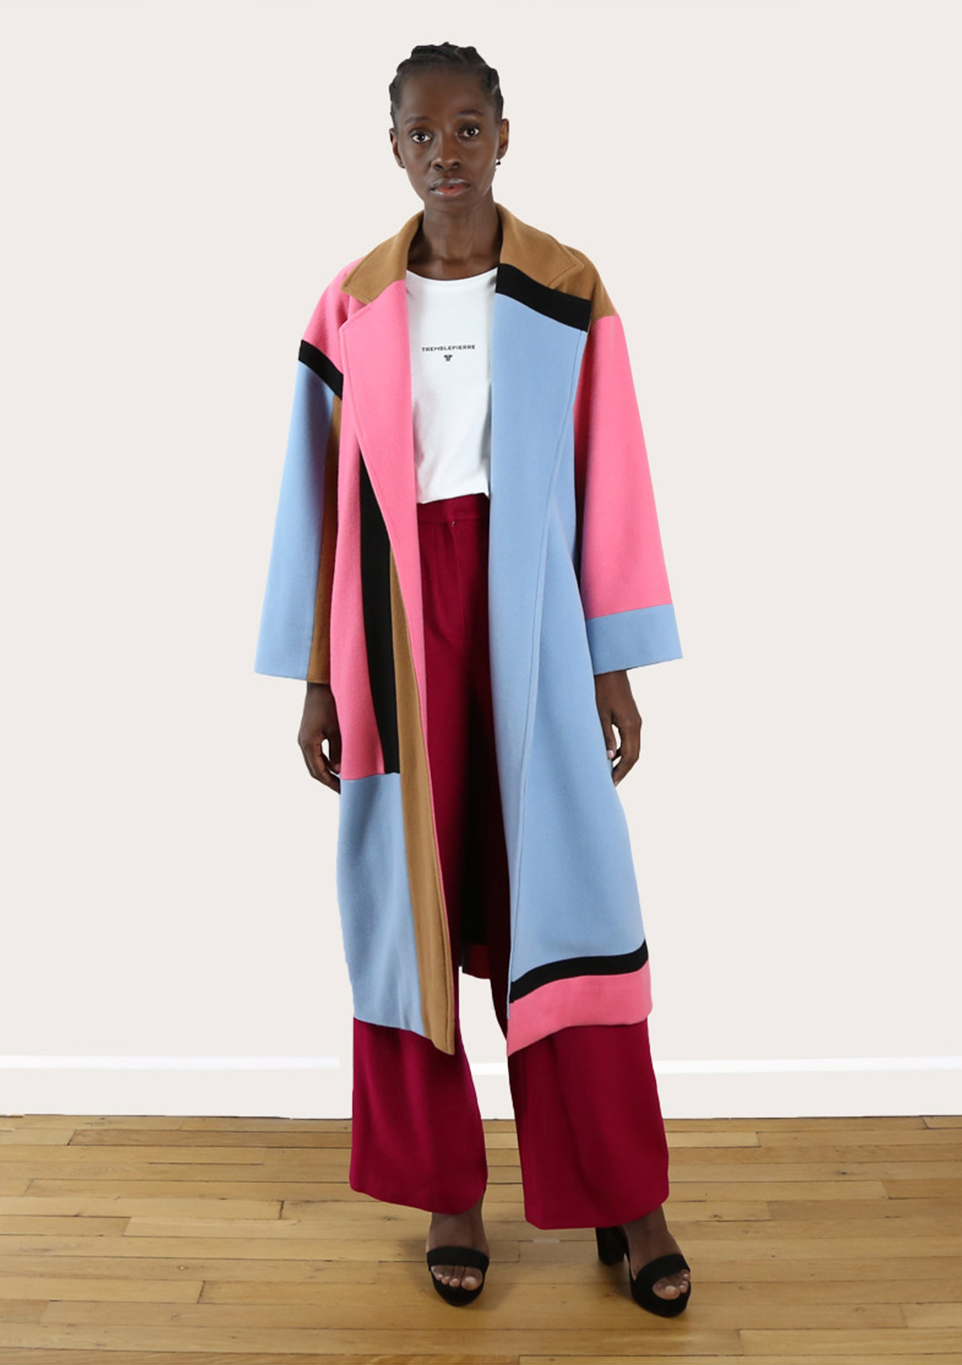 Manteau long coat upcycling color block du créateur Tremblepierre